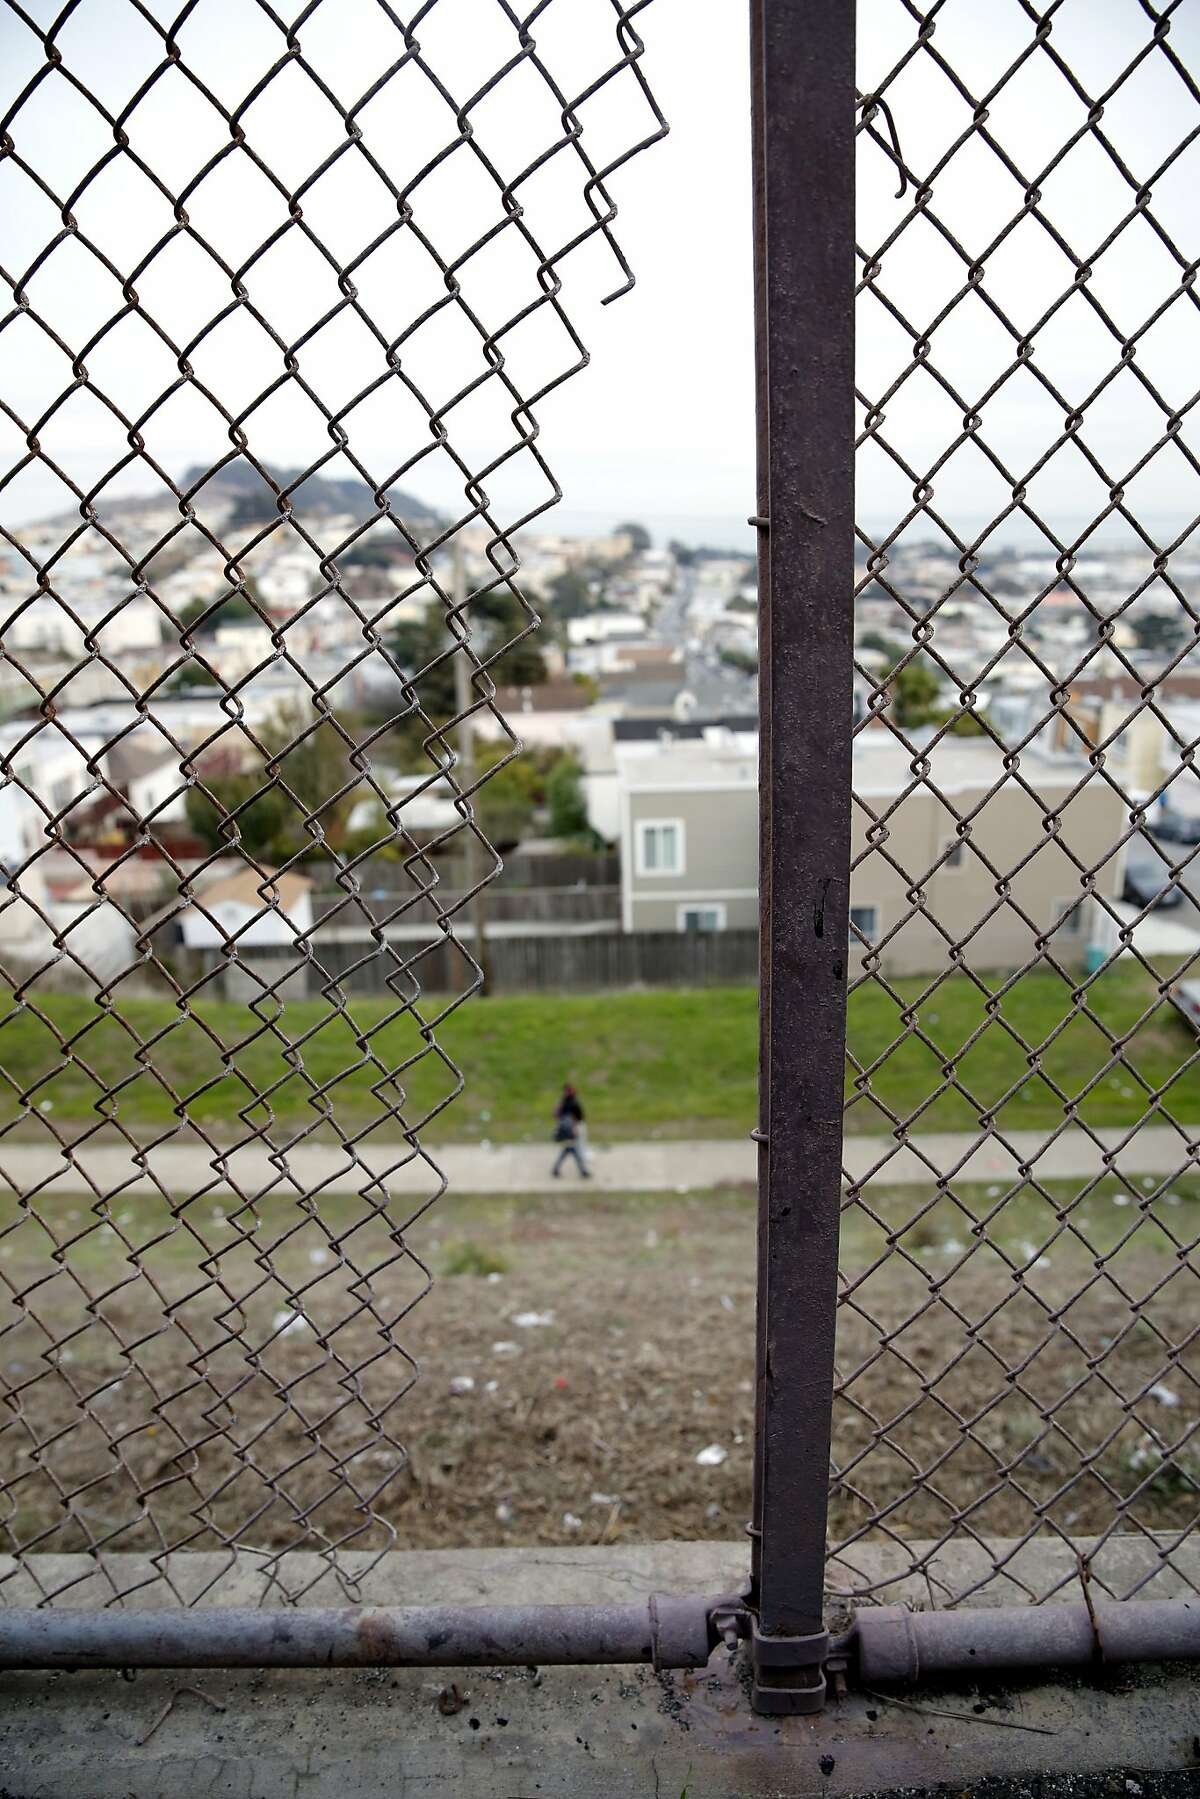 A gap in a chain link fence police suspect was cut to allow the thieves to remove the bicycles from Visitacion Valley Middle School in San Francisco, California, on Monday, Nov. 30, 2015.